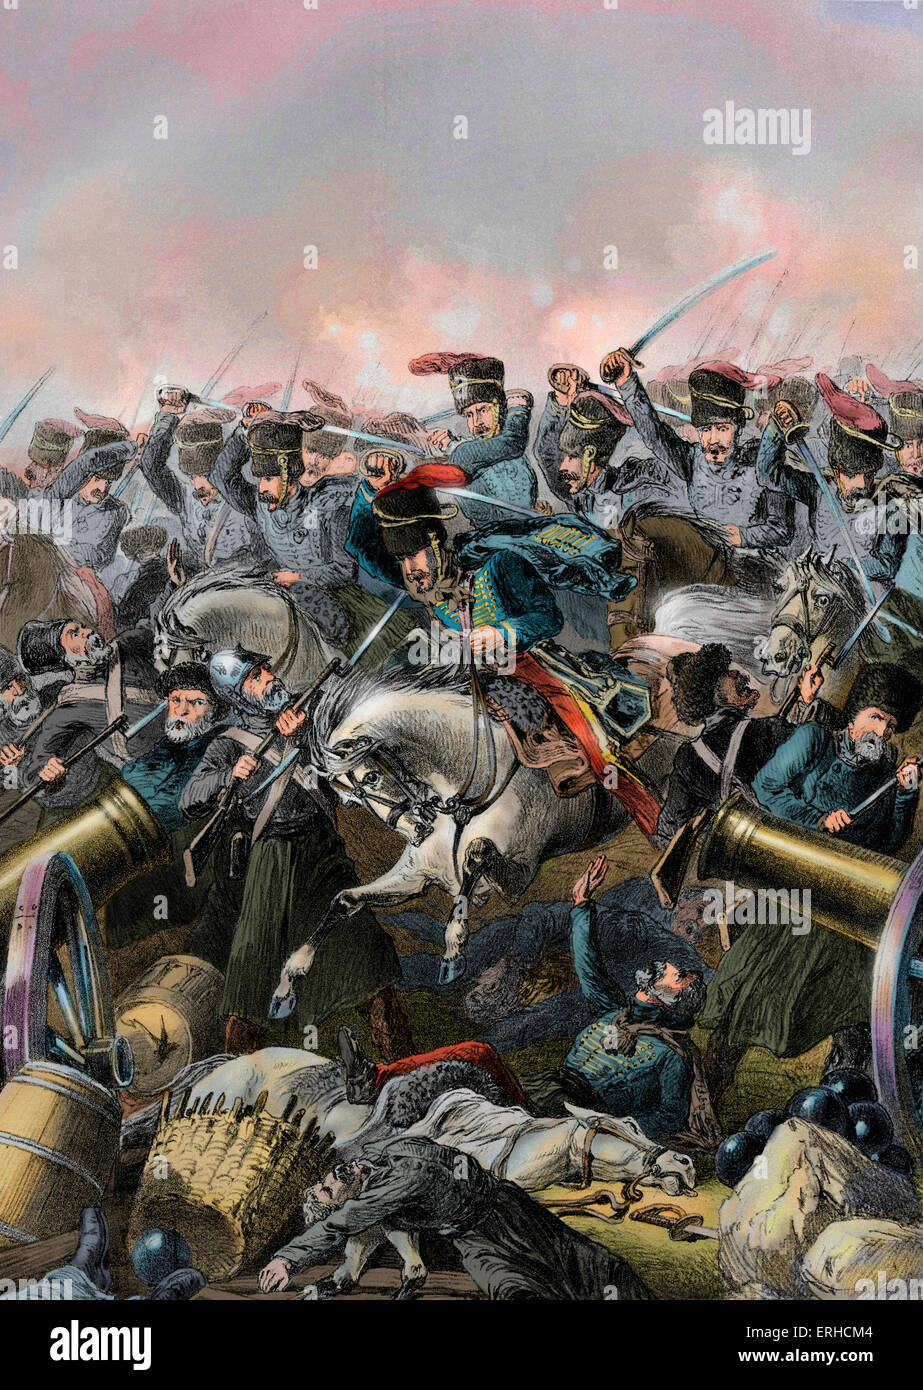 The charge of the light brigade at Balaclava led by Lord Cardigan during the Battle of Balaclava on 25 October 1854 - Stock Image